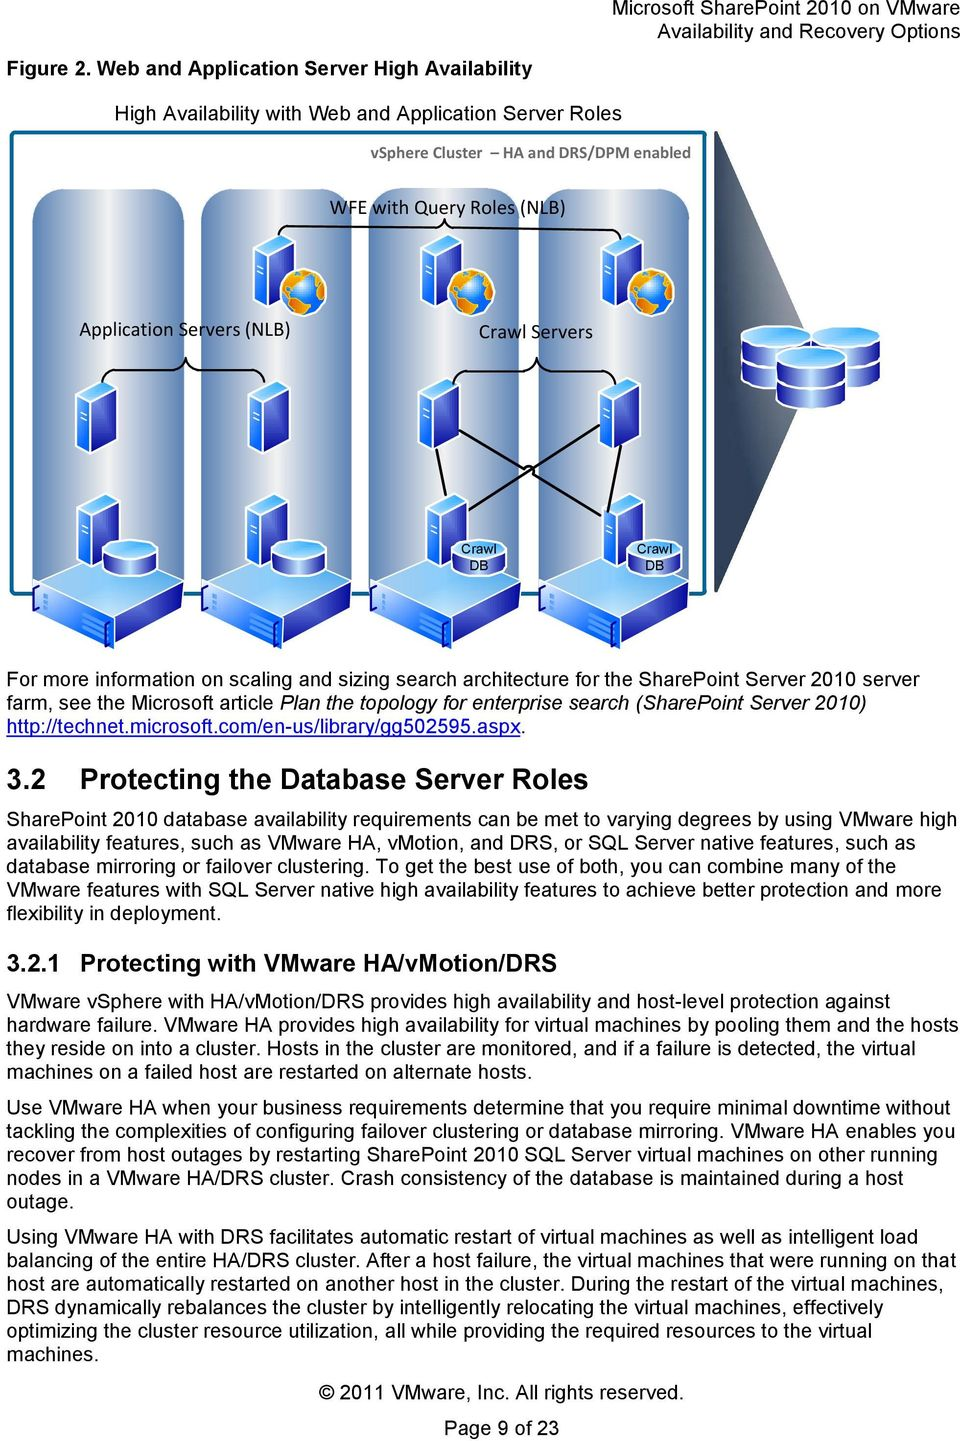 Servers Crawl DB Crawl DB For more information on scaling and sizing search architecture for the SharePoint Server 2010 server farm, see the Microsoft article Plan the topology for enterprise search